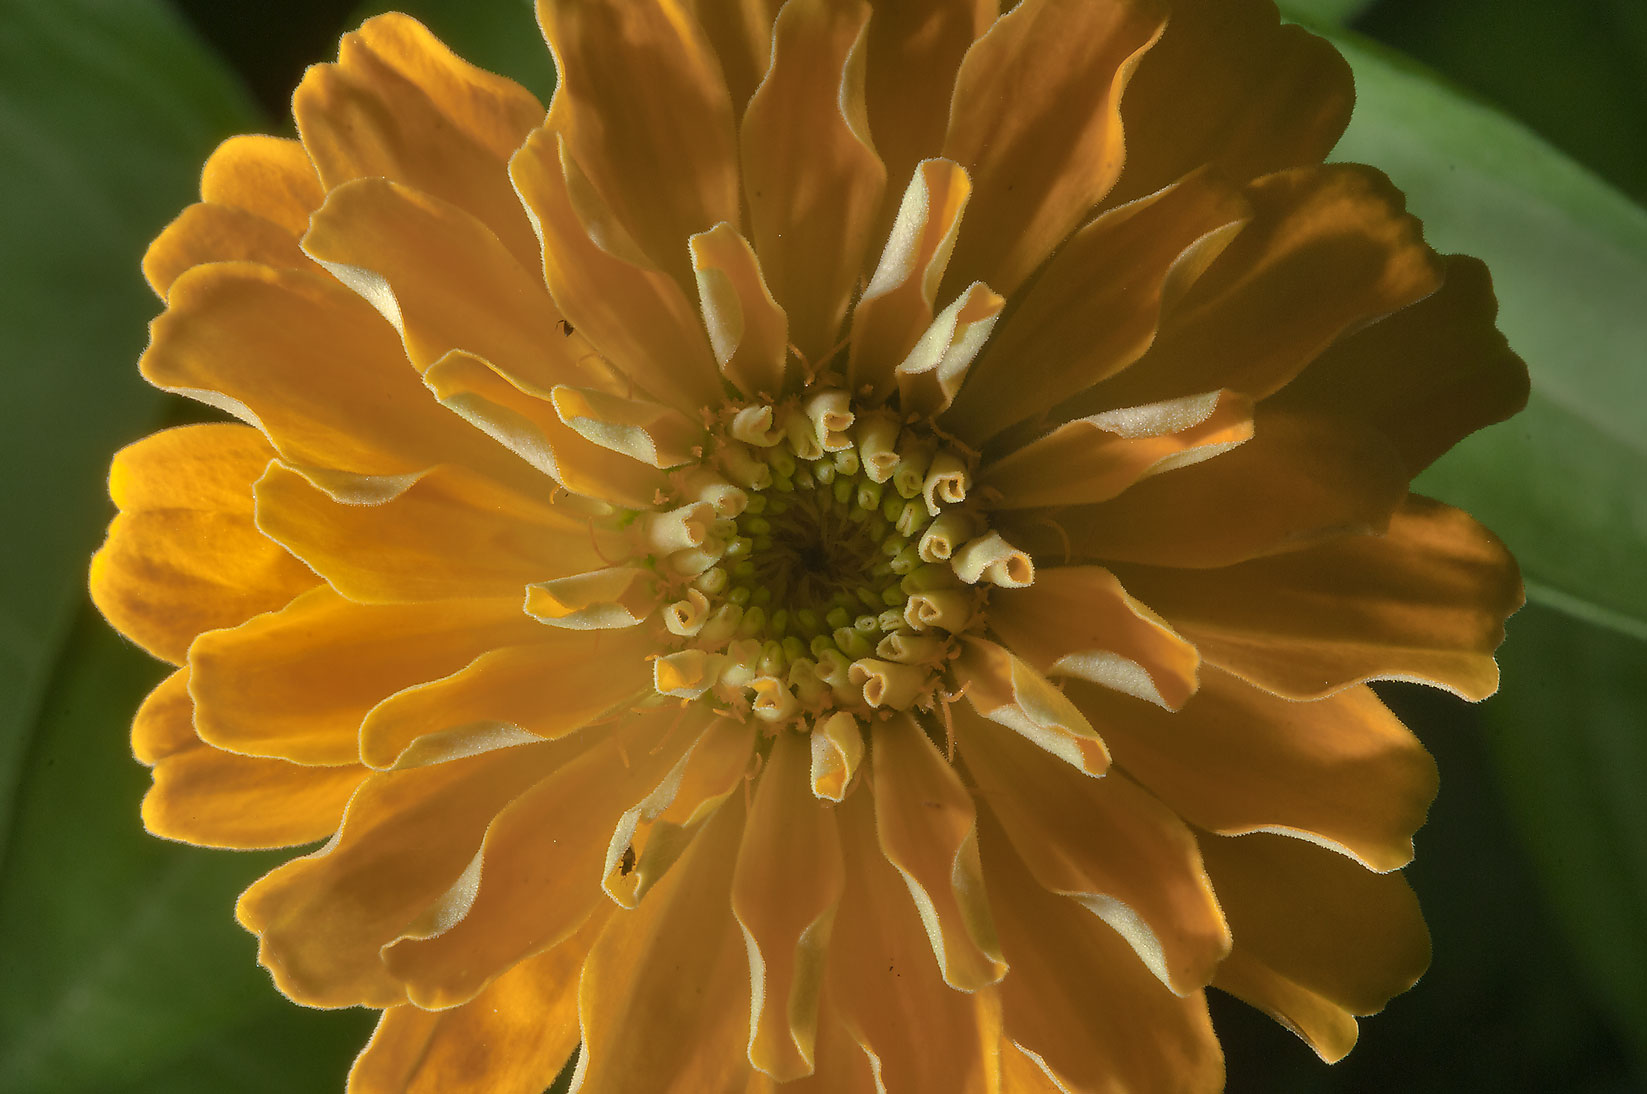 Yellow zinnia in TAMU Holistic Garden in Texas A&M University. College Station, Texas